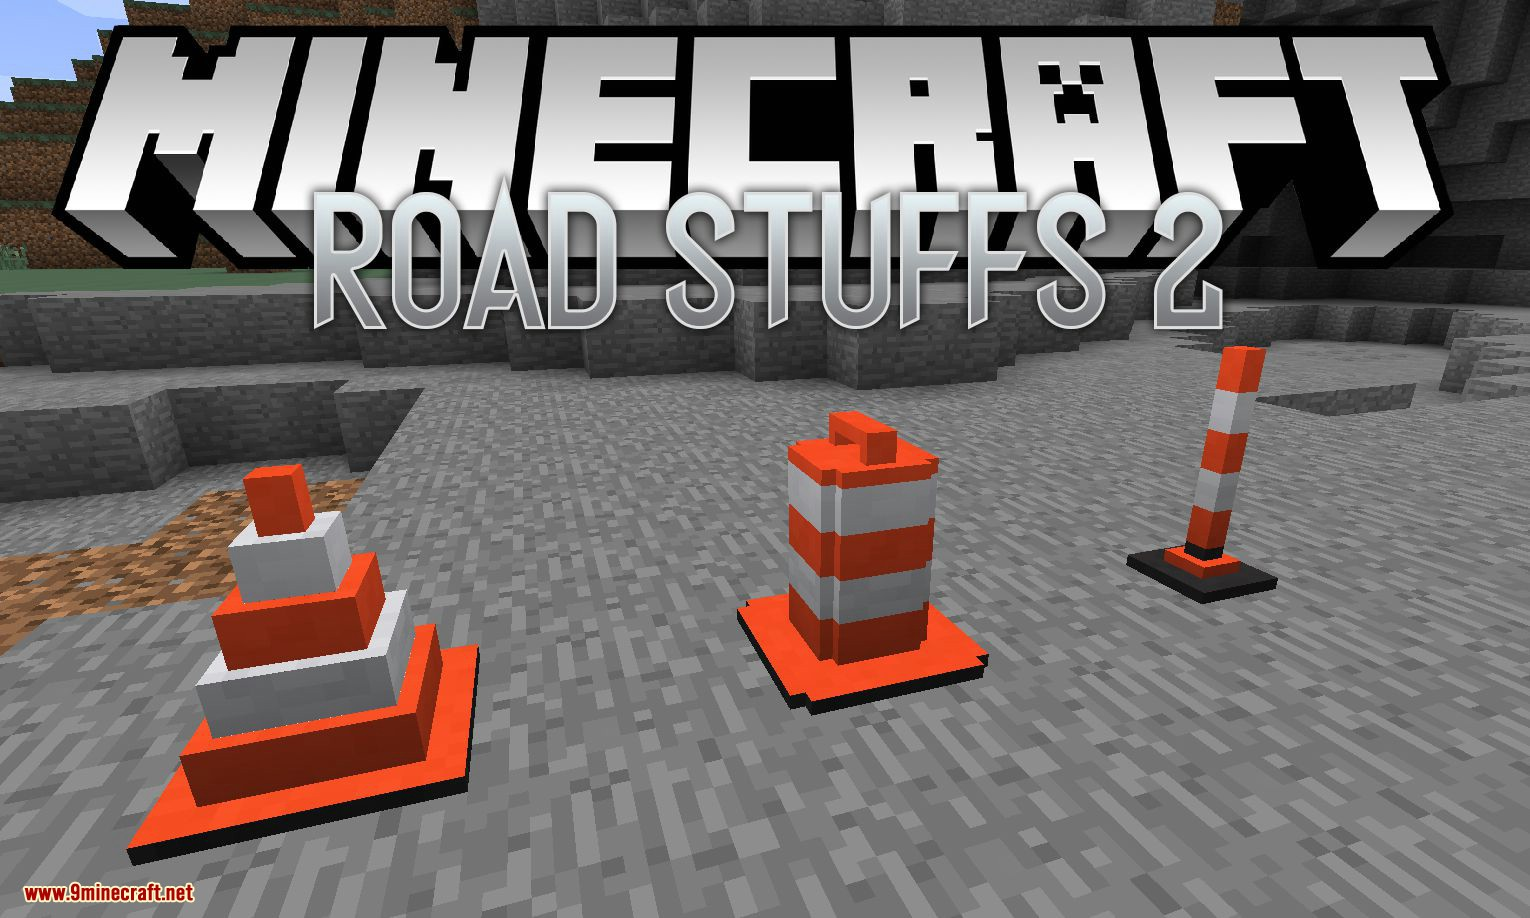 Road Stuffs 2 mod for minecraft logo